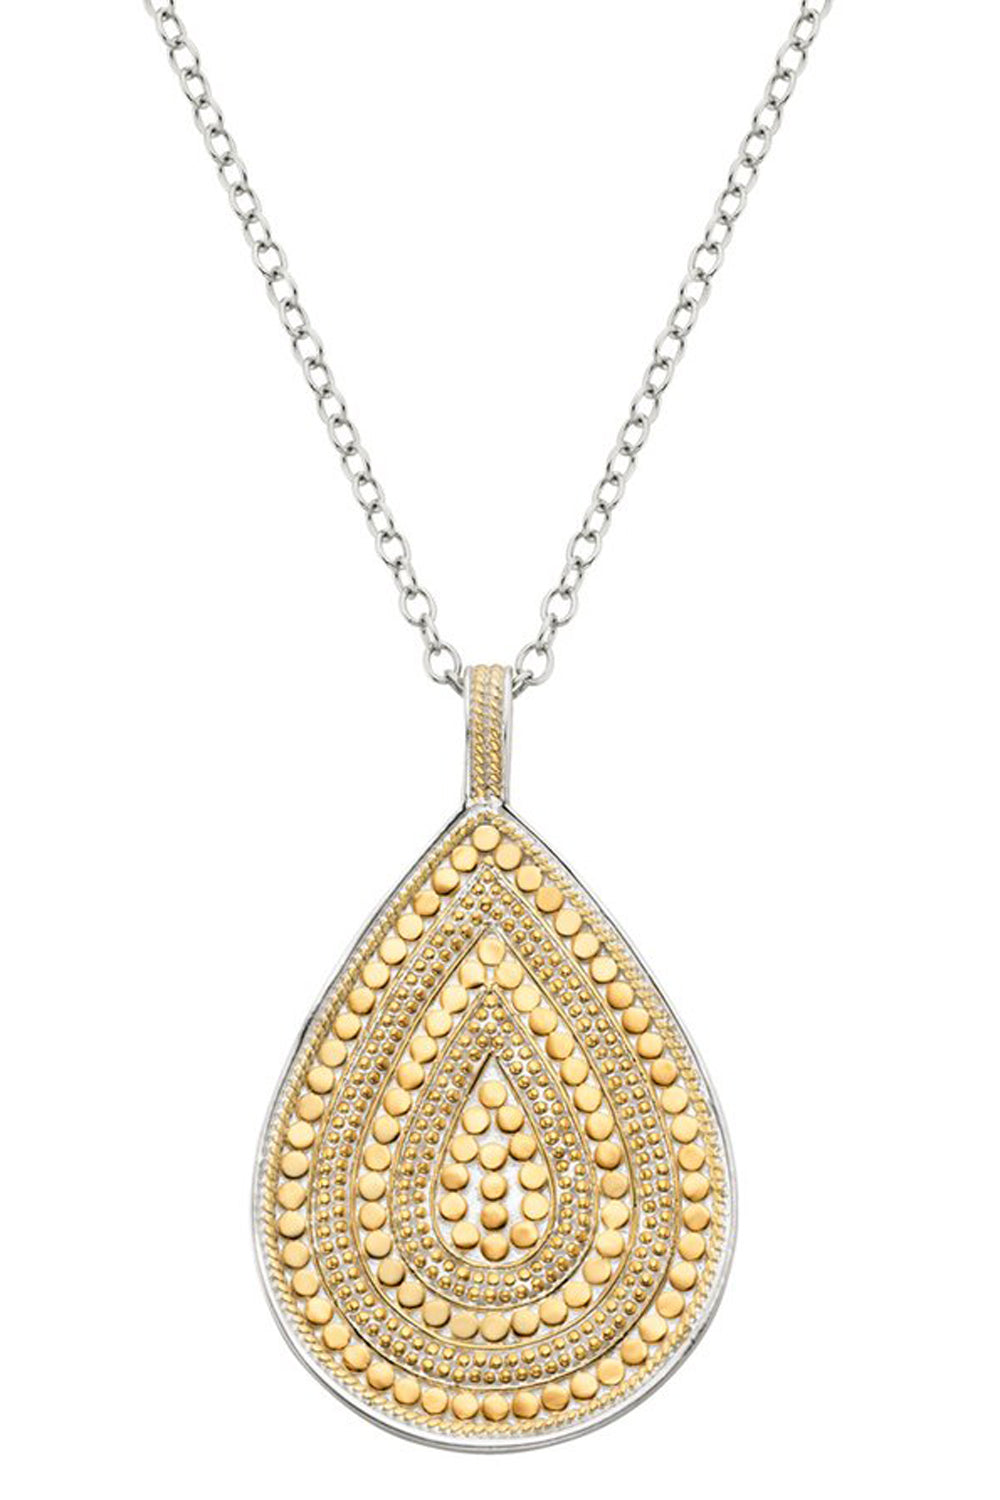 AB Beaded Teardrop Necklace - Gold & Silver